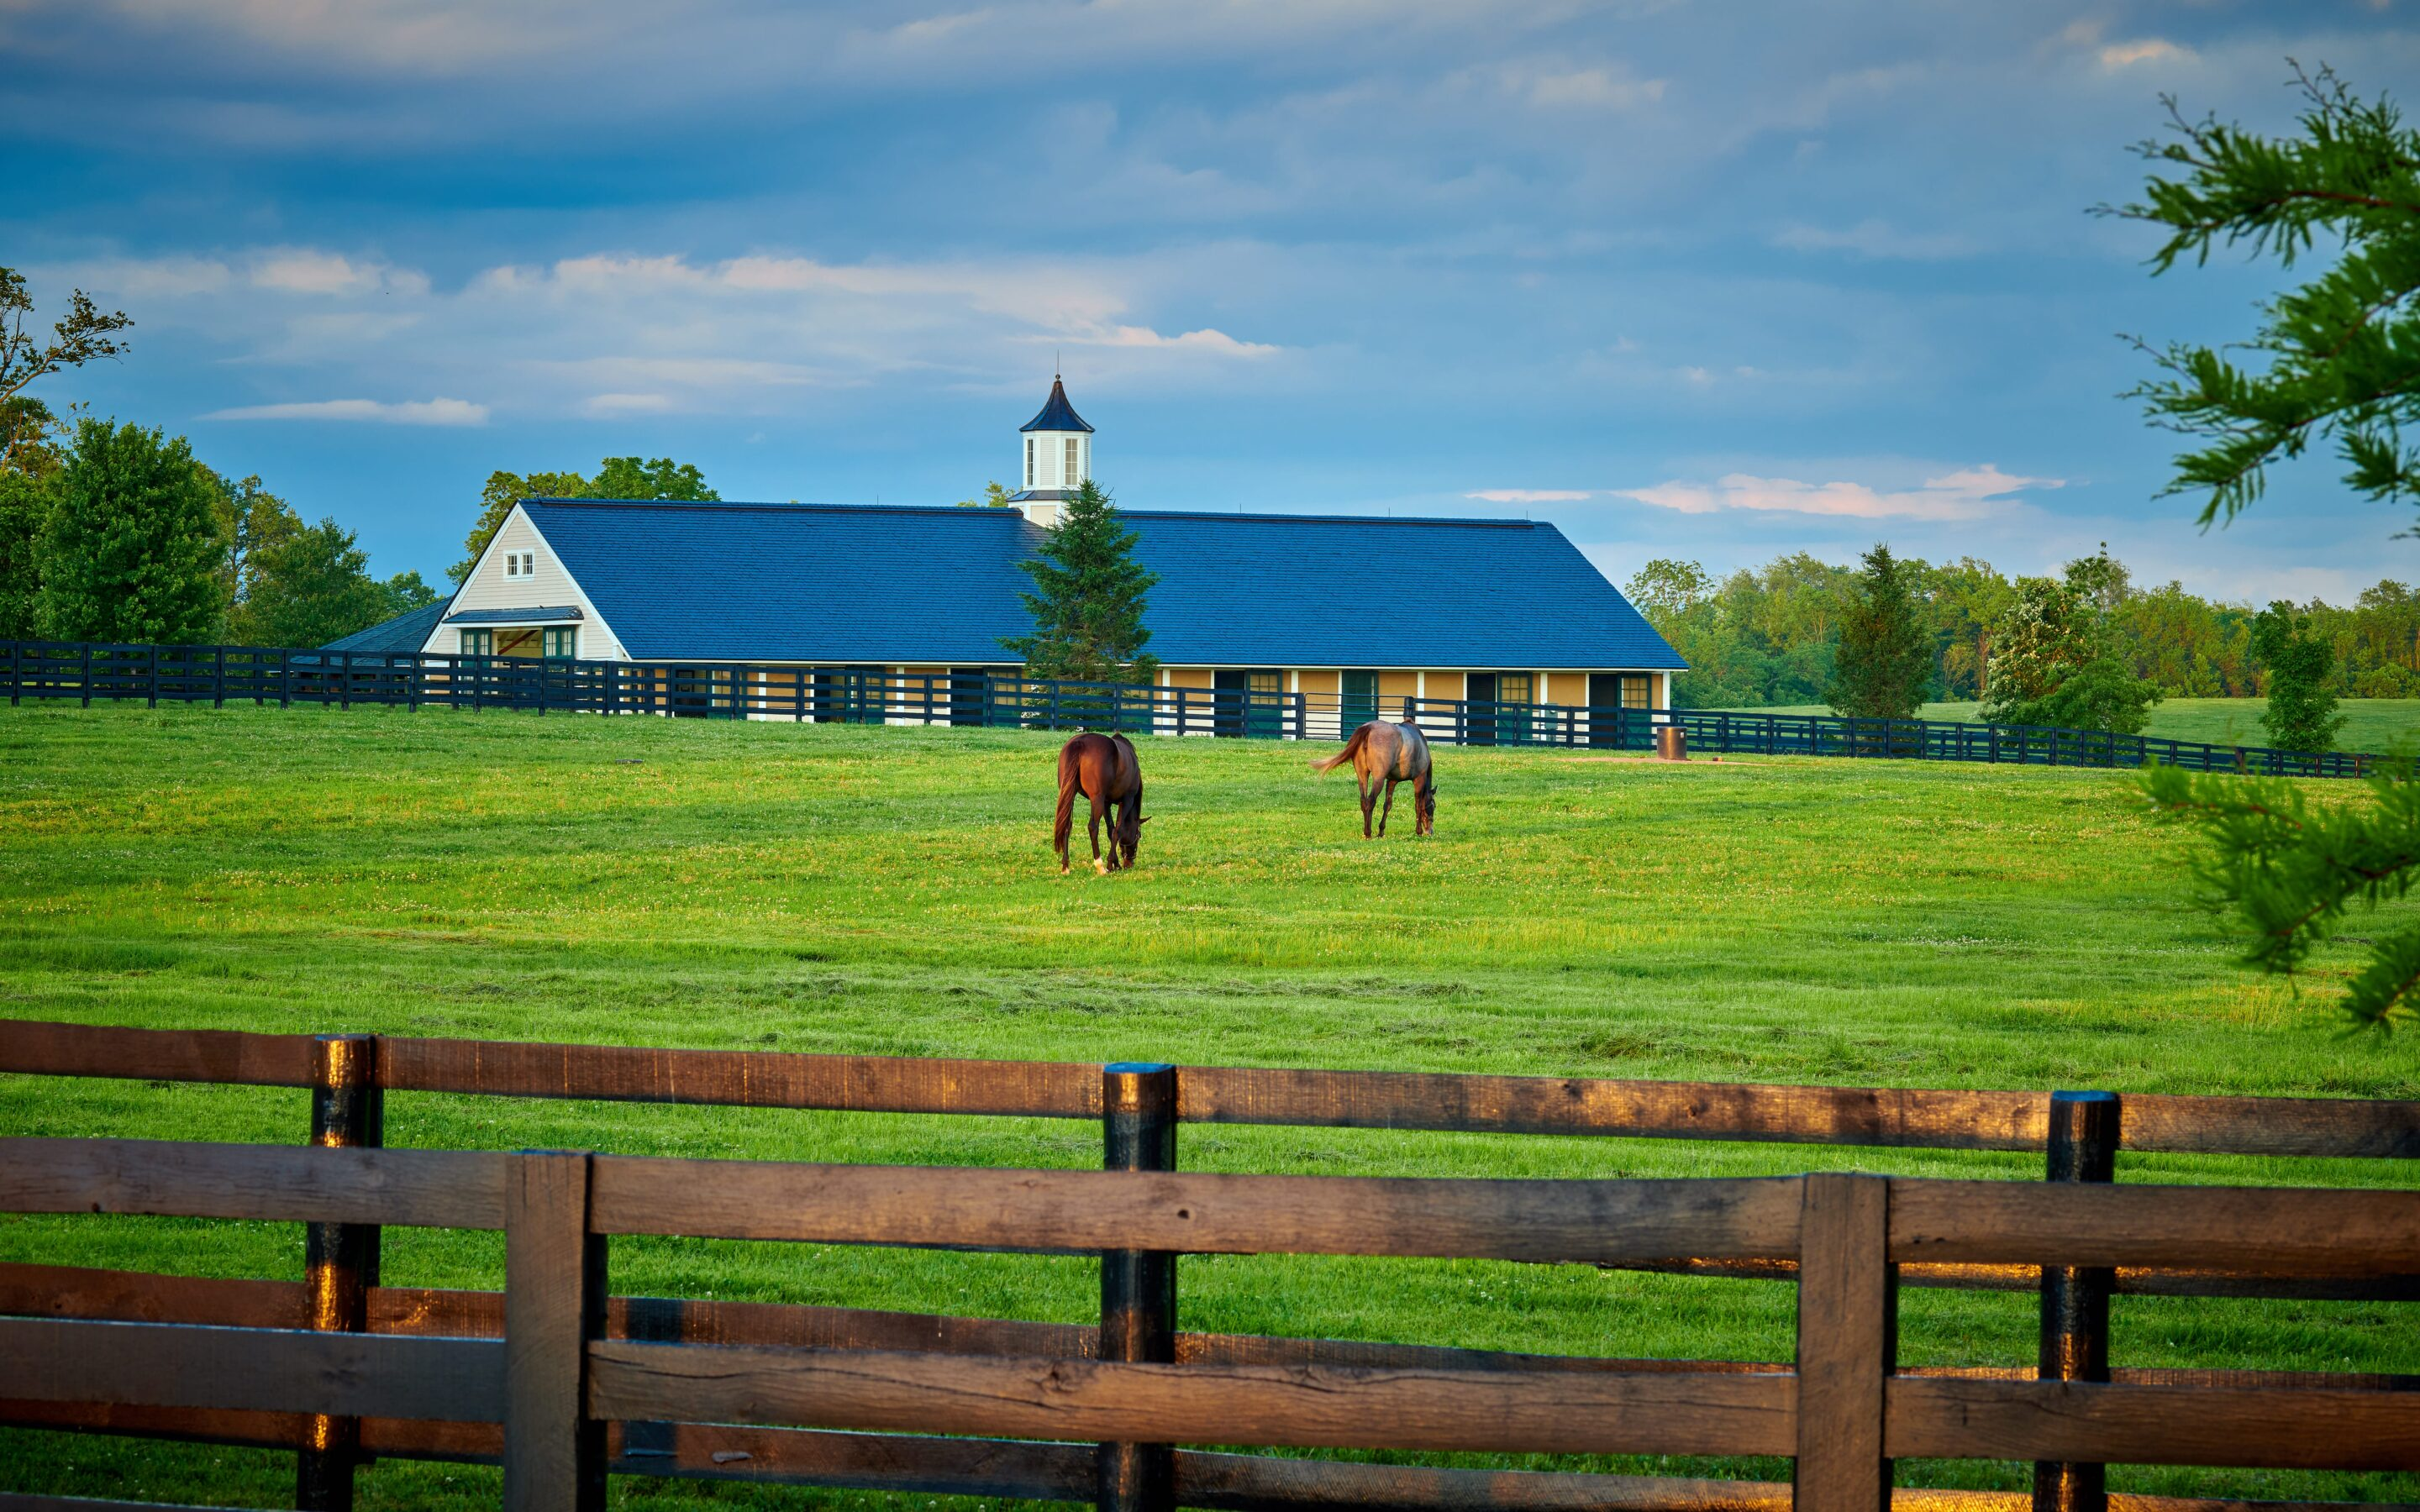 5 Factors Affecting Horse Farm Prices in Ontario